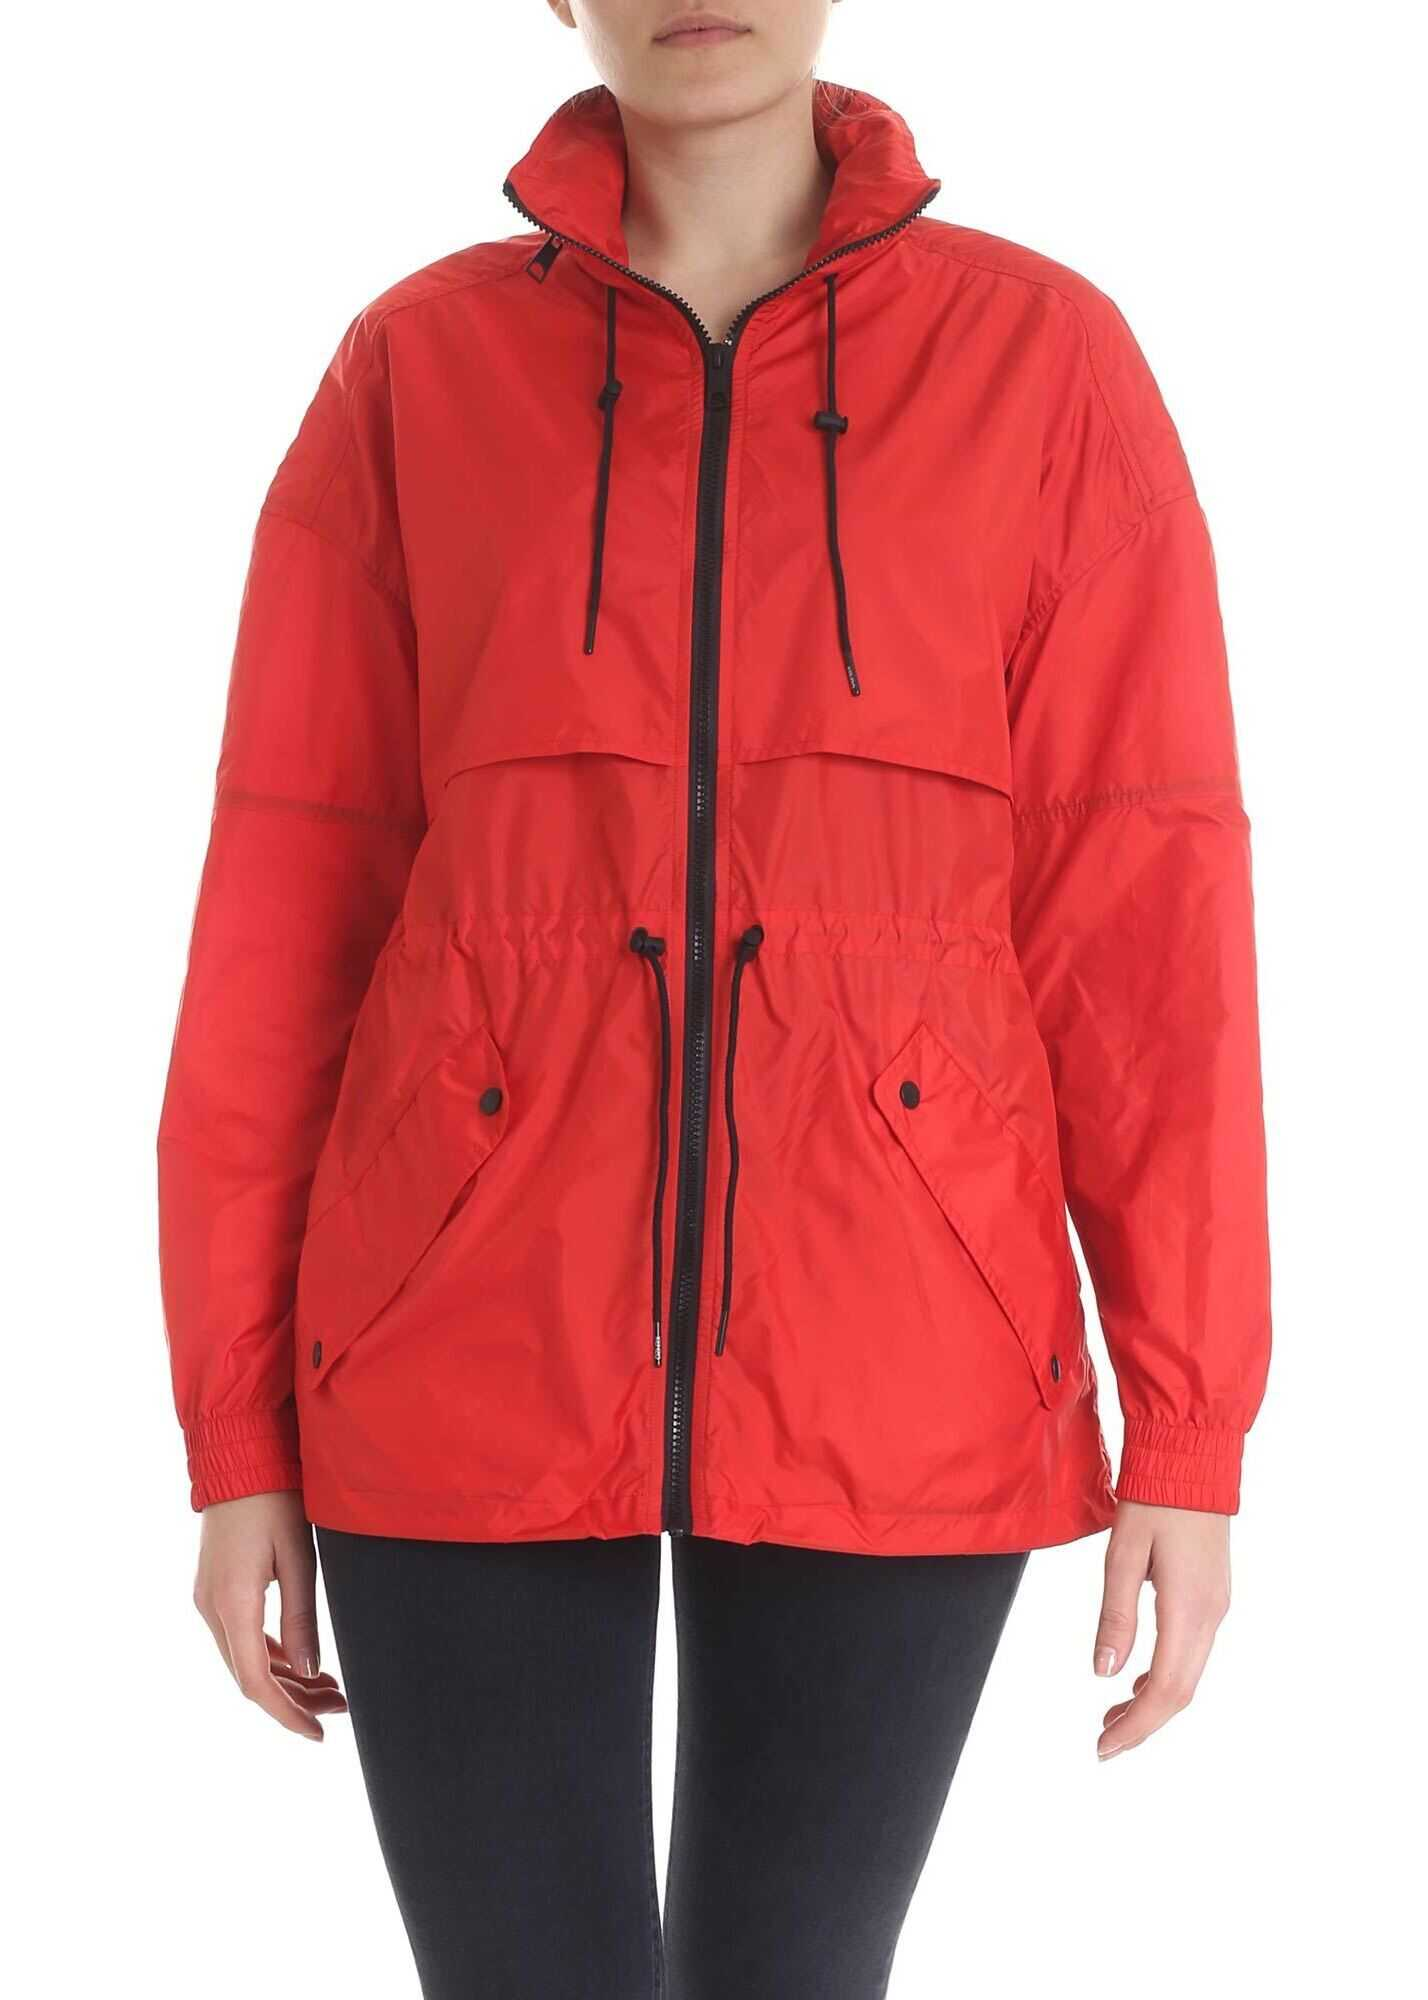 Red Technical Jacket With Logo